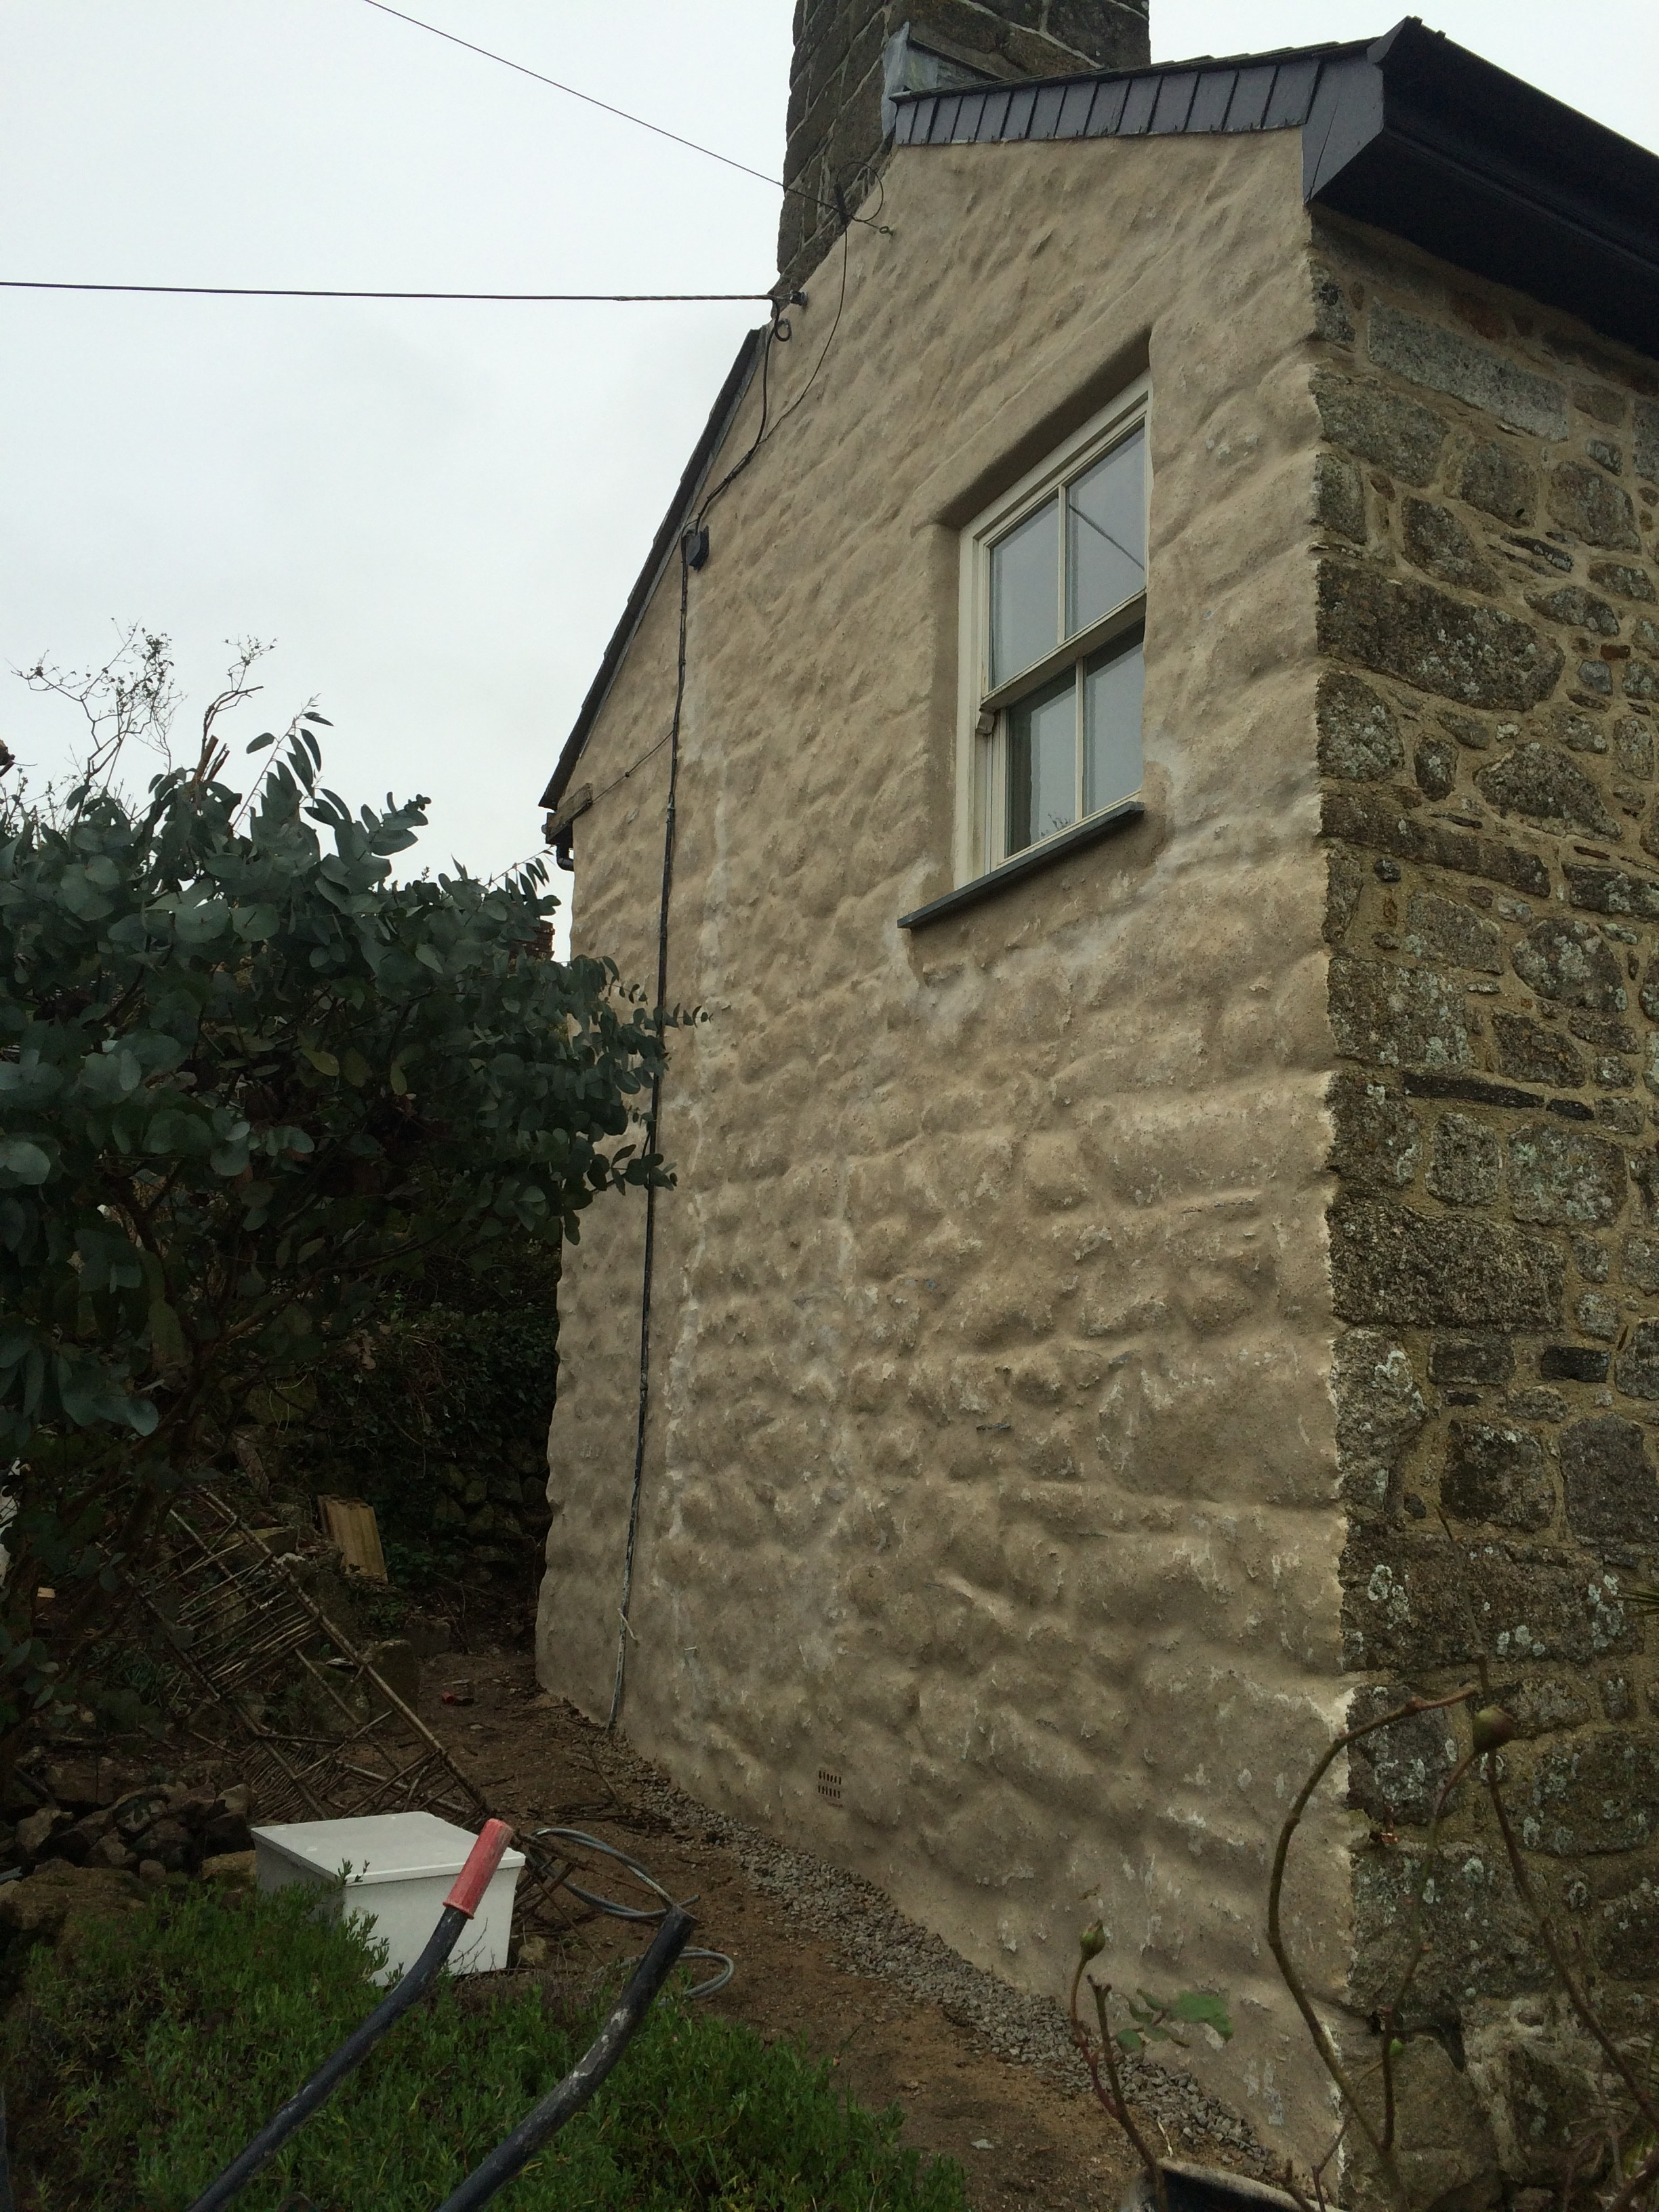 curing damp issues with lime render